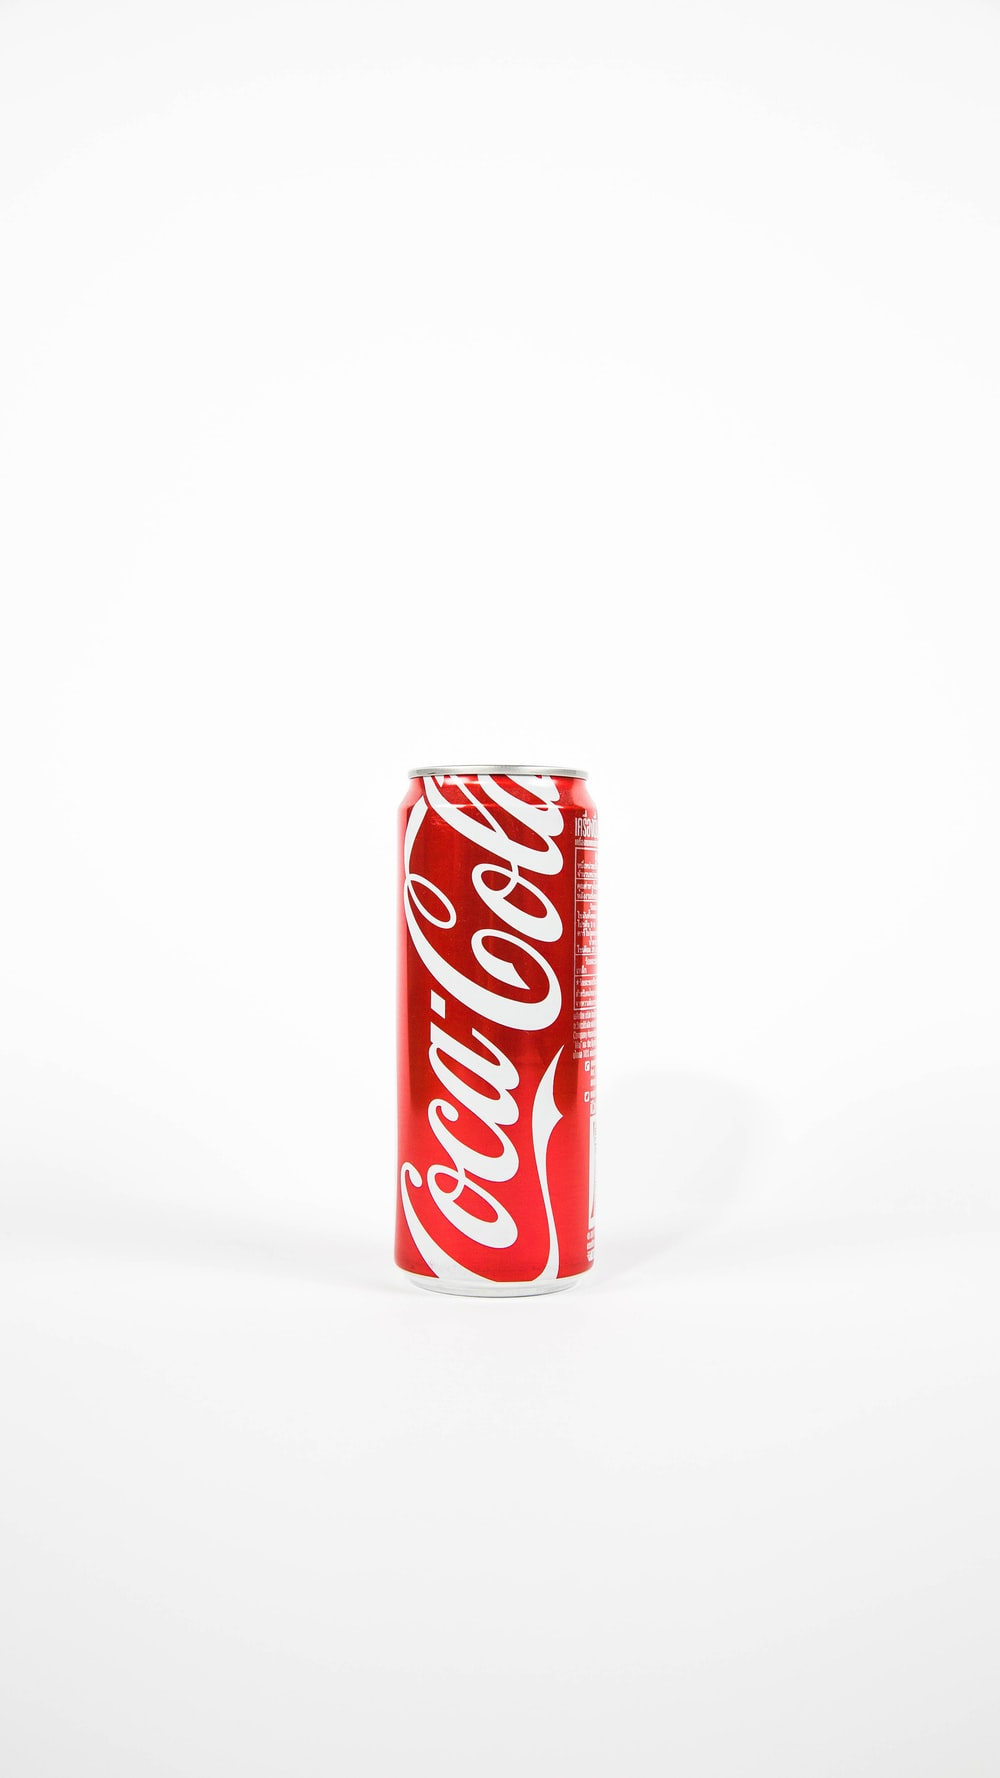 red Coca-Cola can